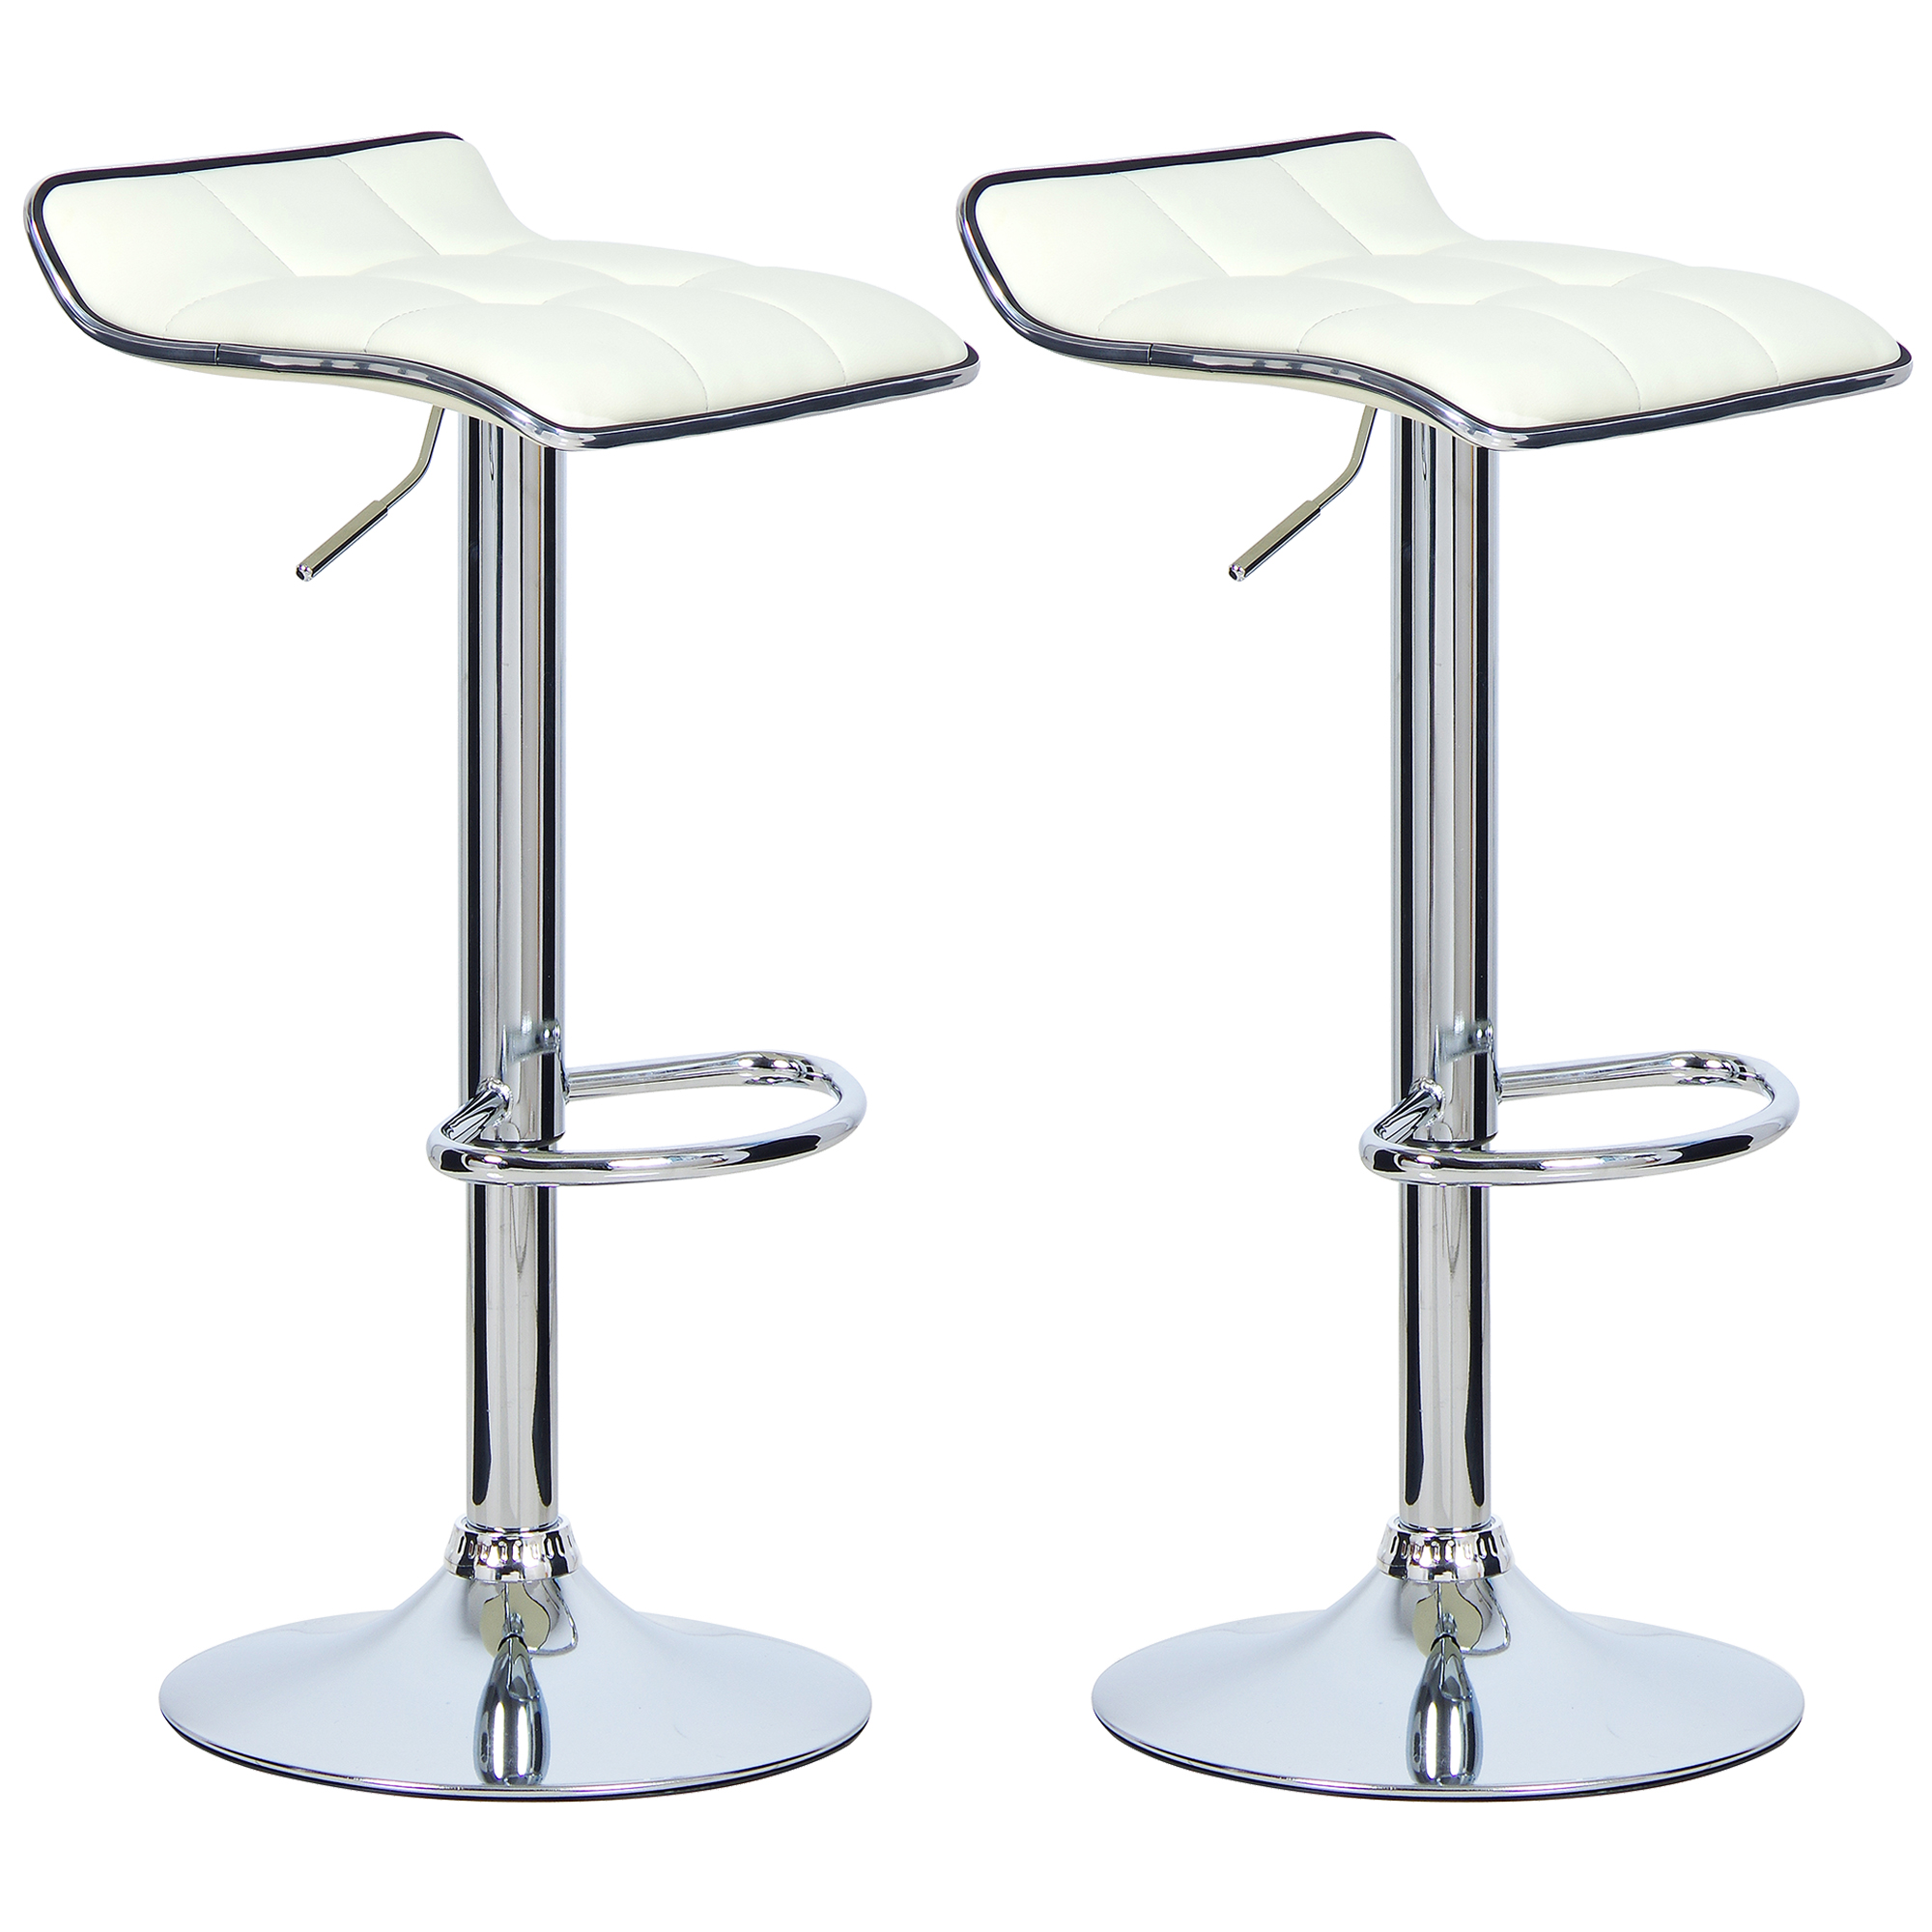 2 tabourets de bar r glable cuir synth tique cuisine for Bar pivotant cuisine